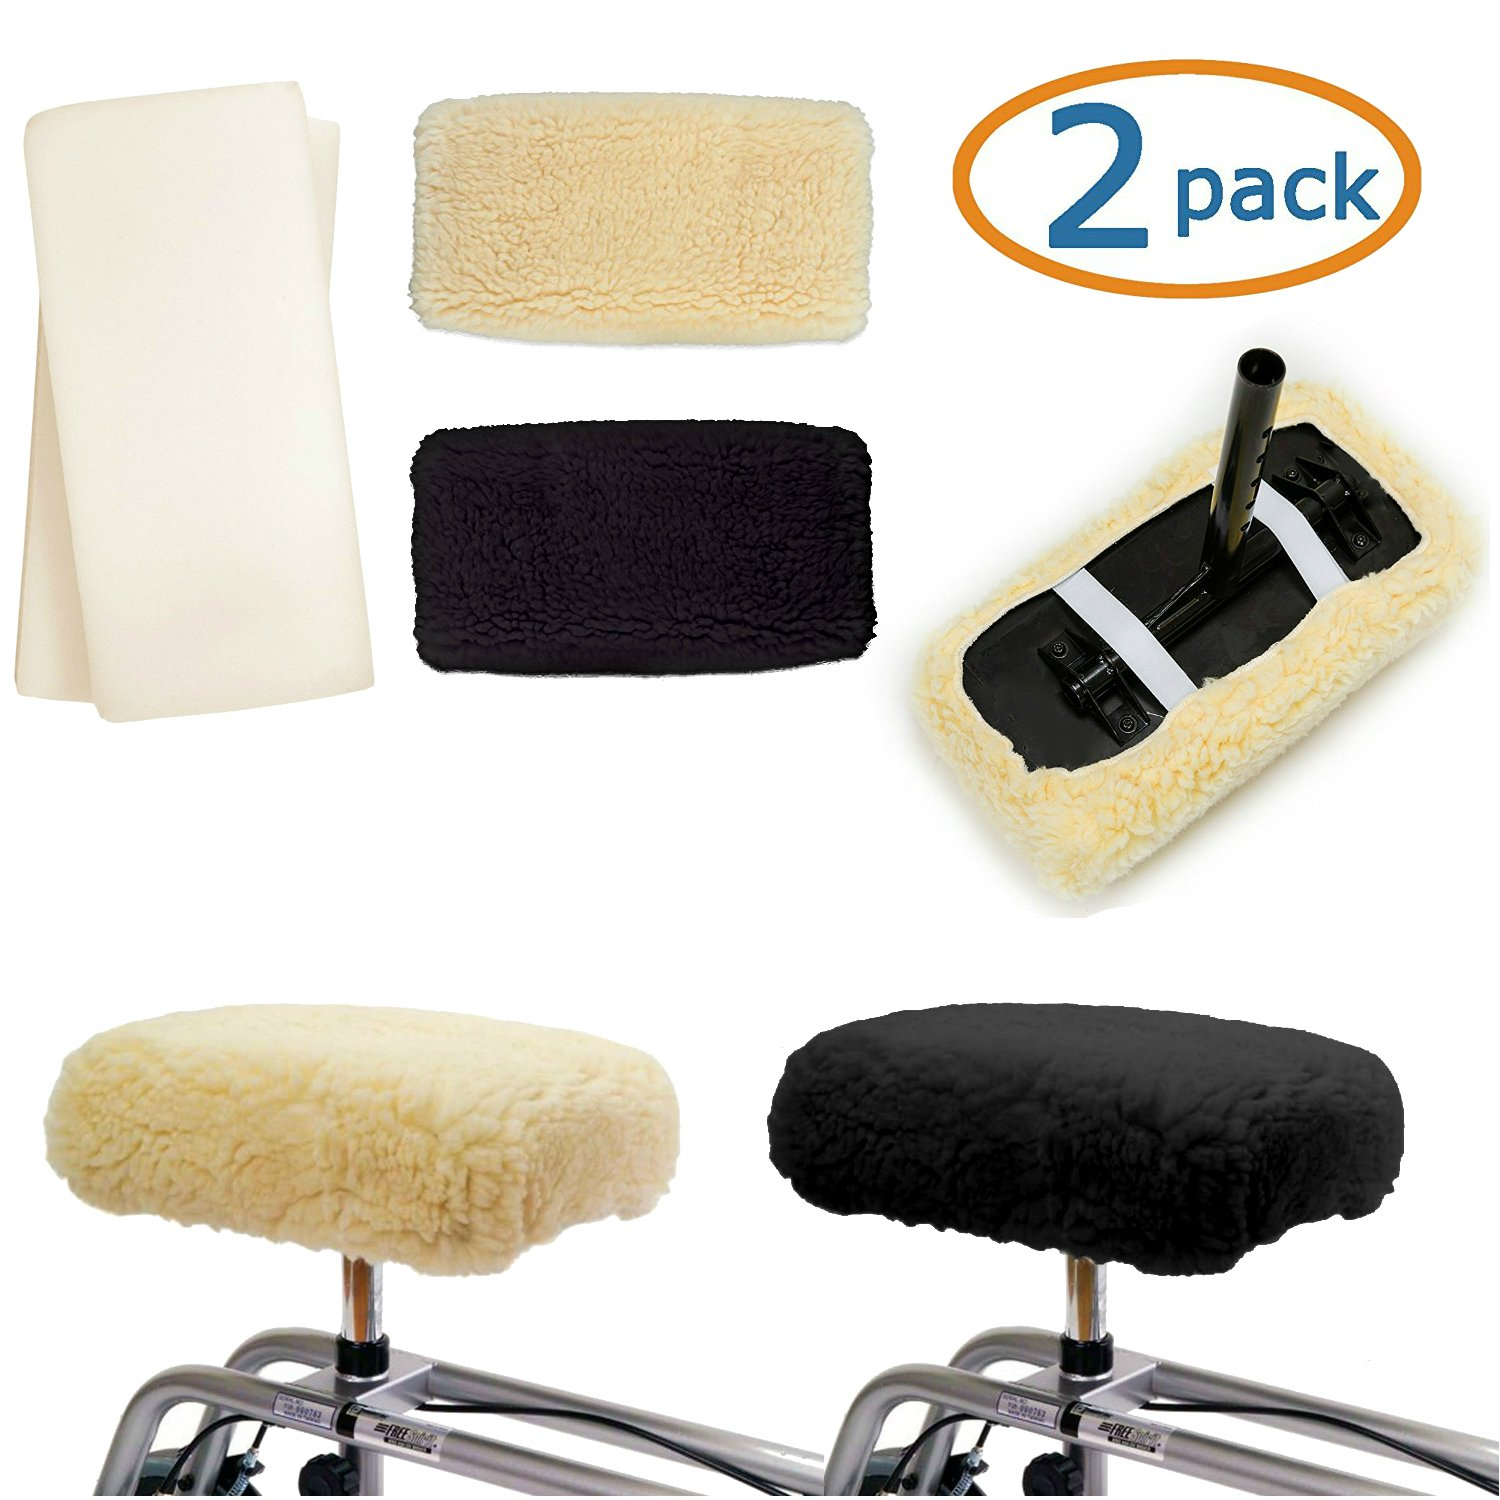 Knee Walker Cushion Covers 2 Pack for Knee Scooter for Injured Leg Universal Knee Scooter Pad Cover Faux Sheep Skin Knee Walker Seat Pads Covers for Rolling Scooter Includes 2 Extra Foam Inserts by Kitchen Krush